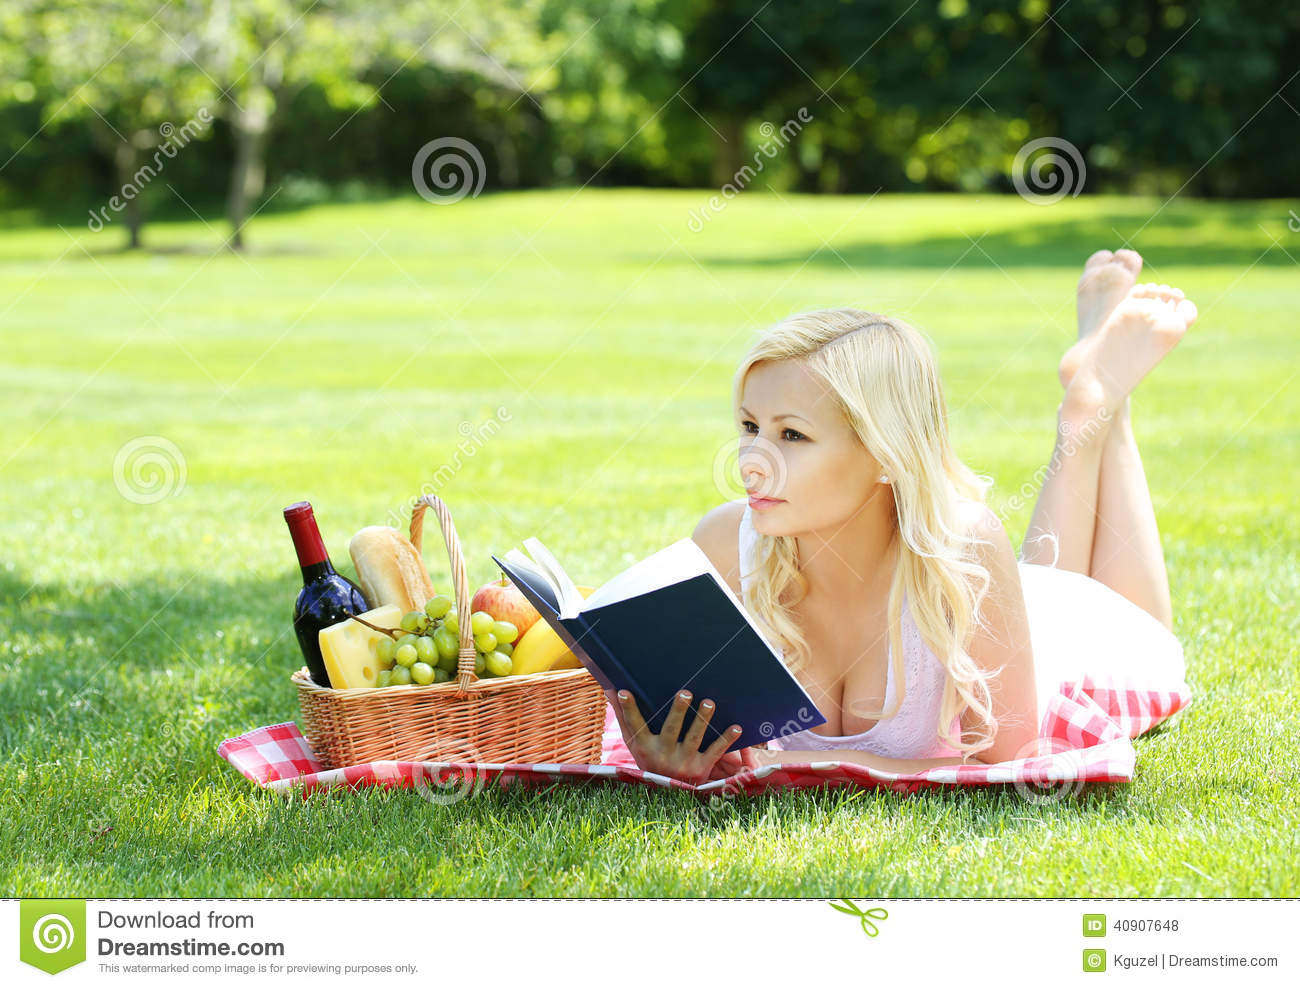 Picnic Blonde Young Woman With Book And Basket Stock